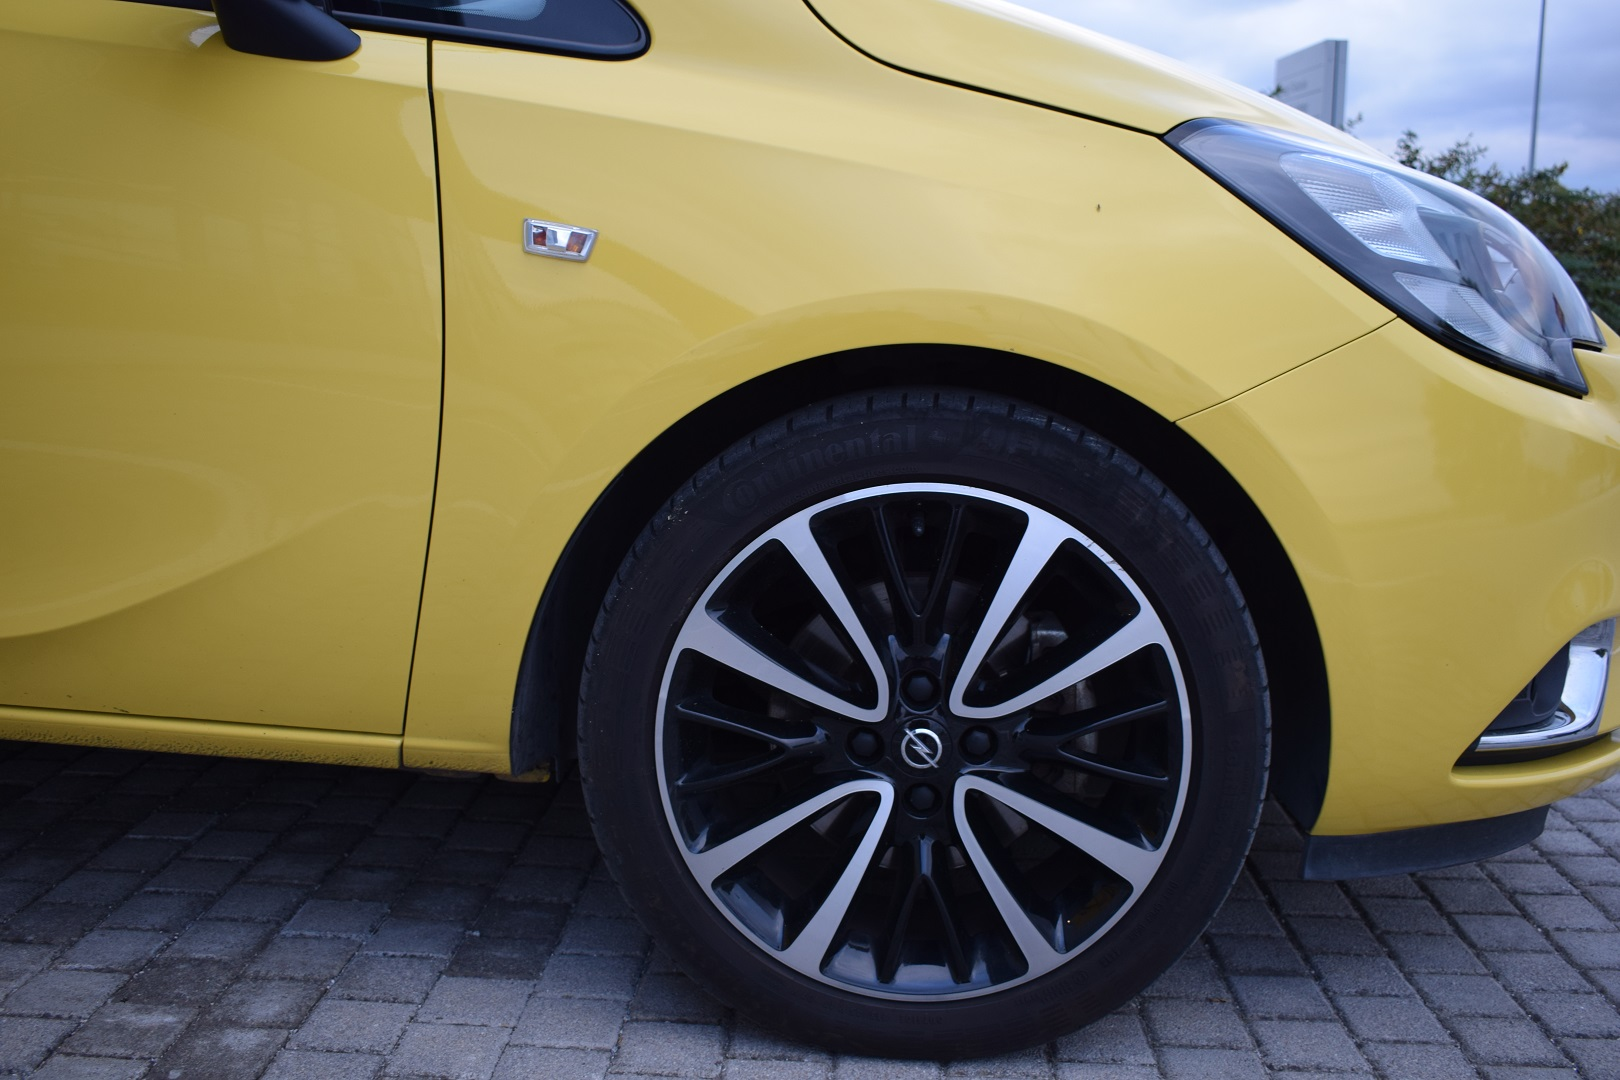 Opel Corsa 1.0 turbo full